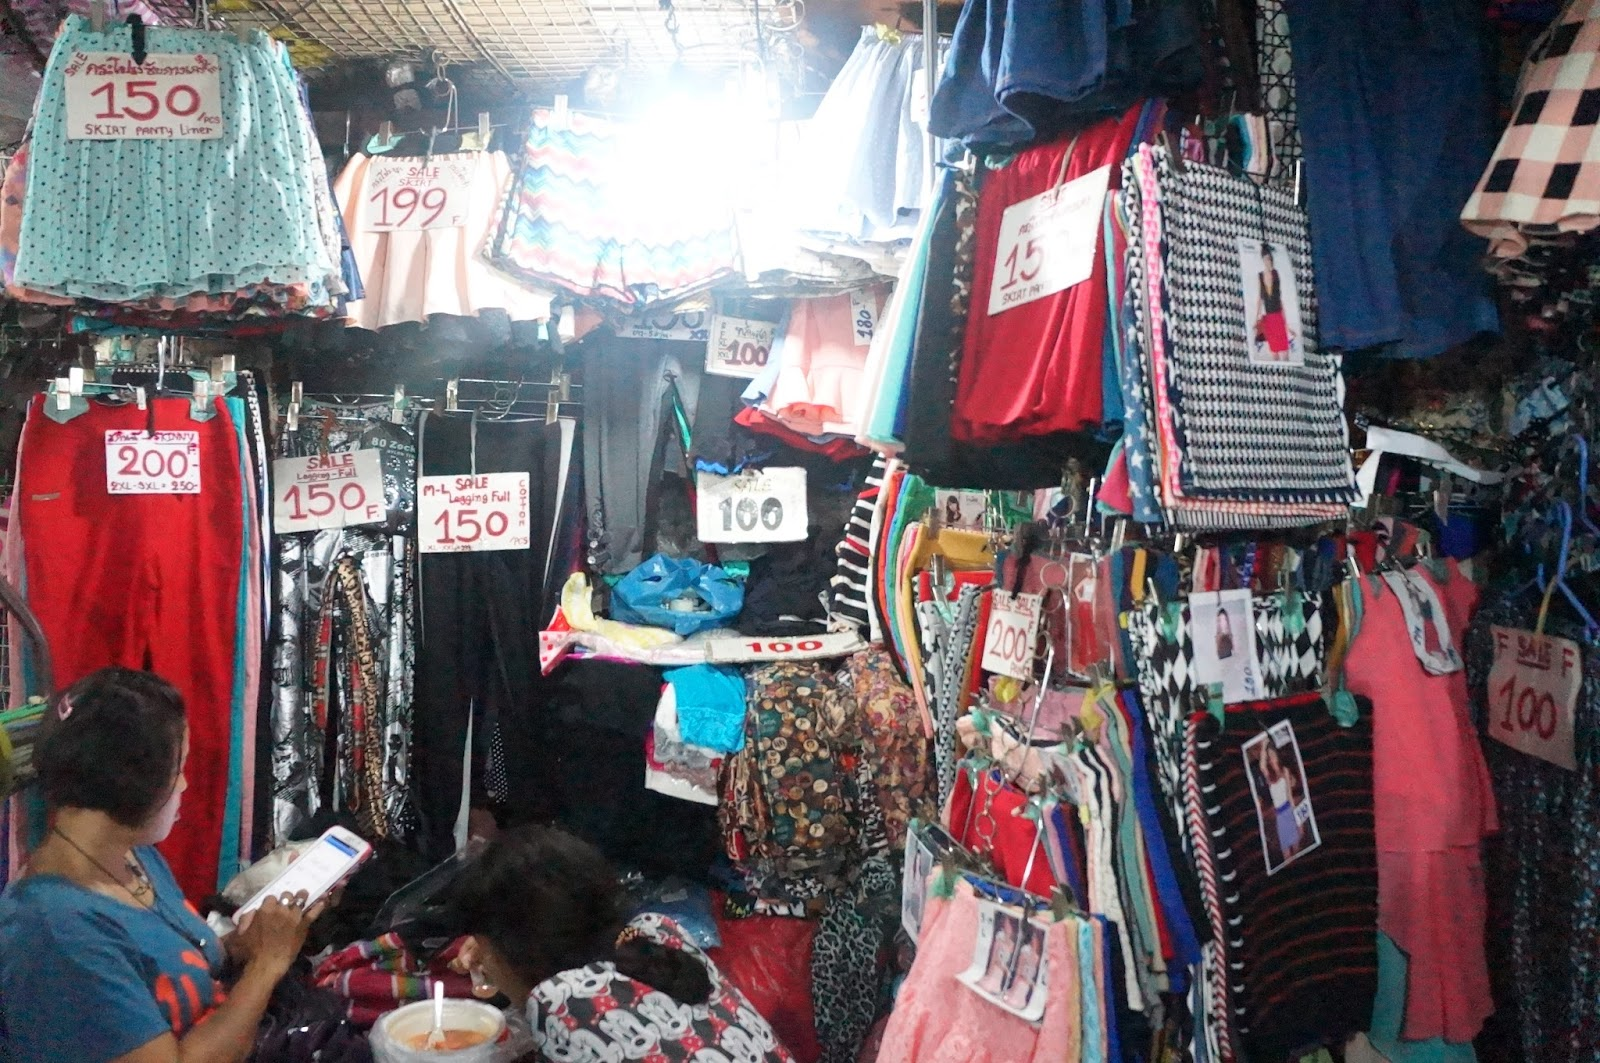 Bangkok Shopping Guide 2015 - The Only 5 Places You Need